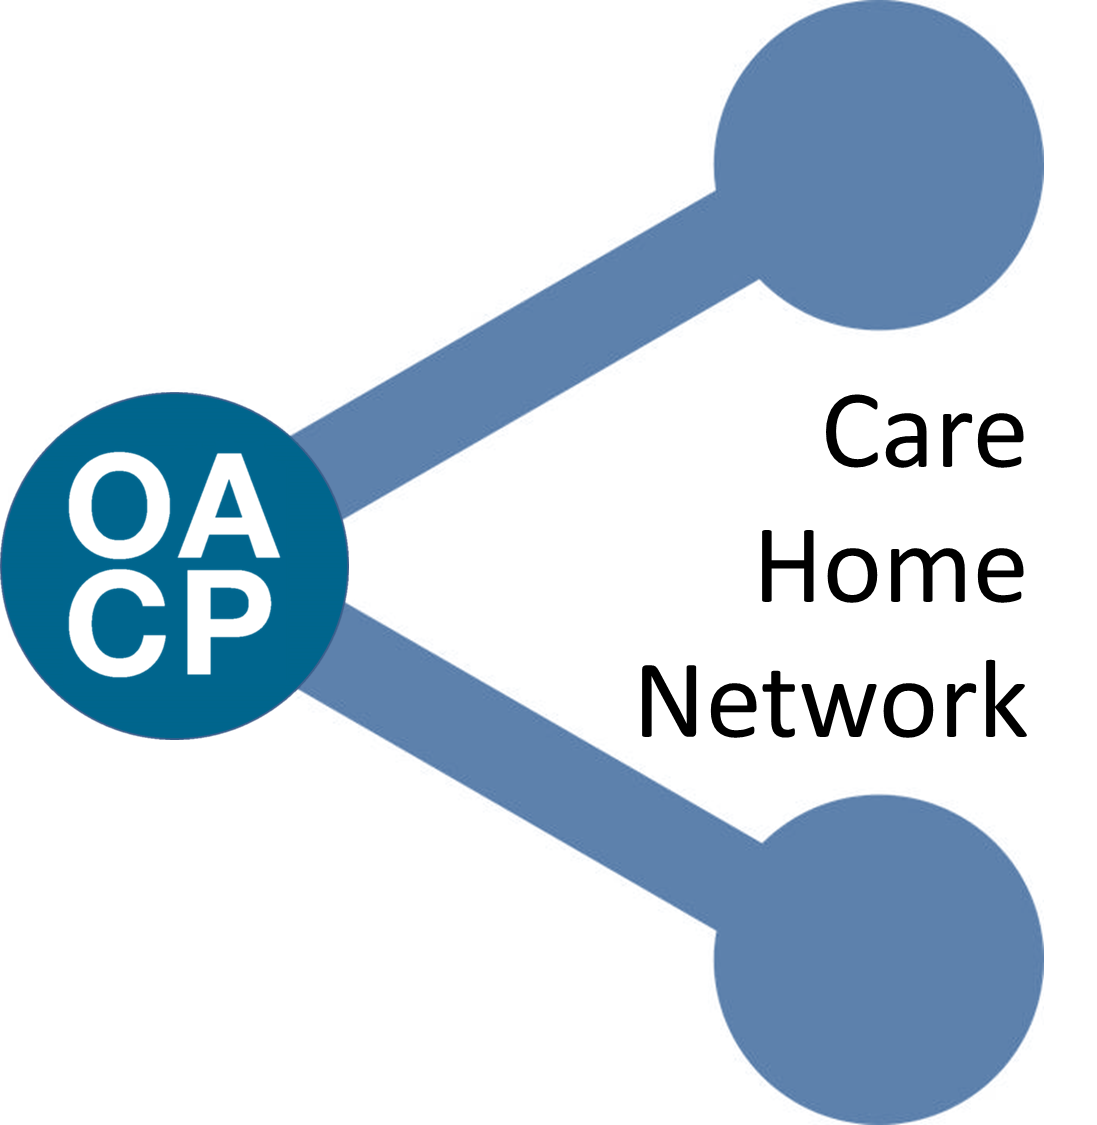 Image for OACP care home network